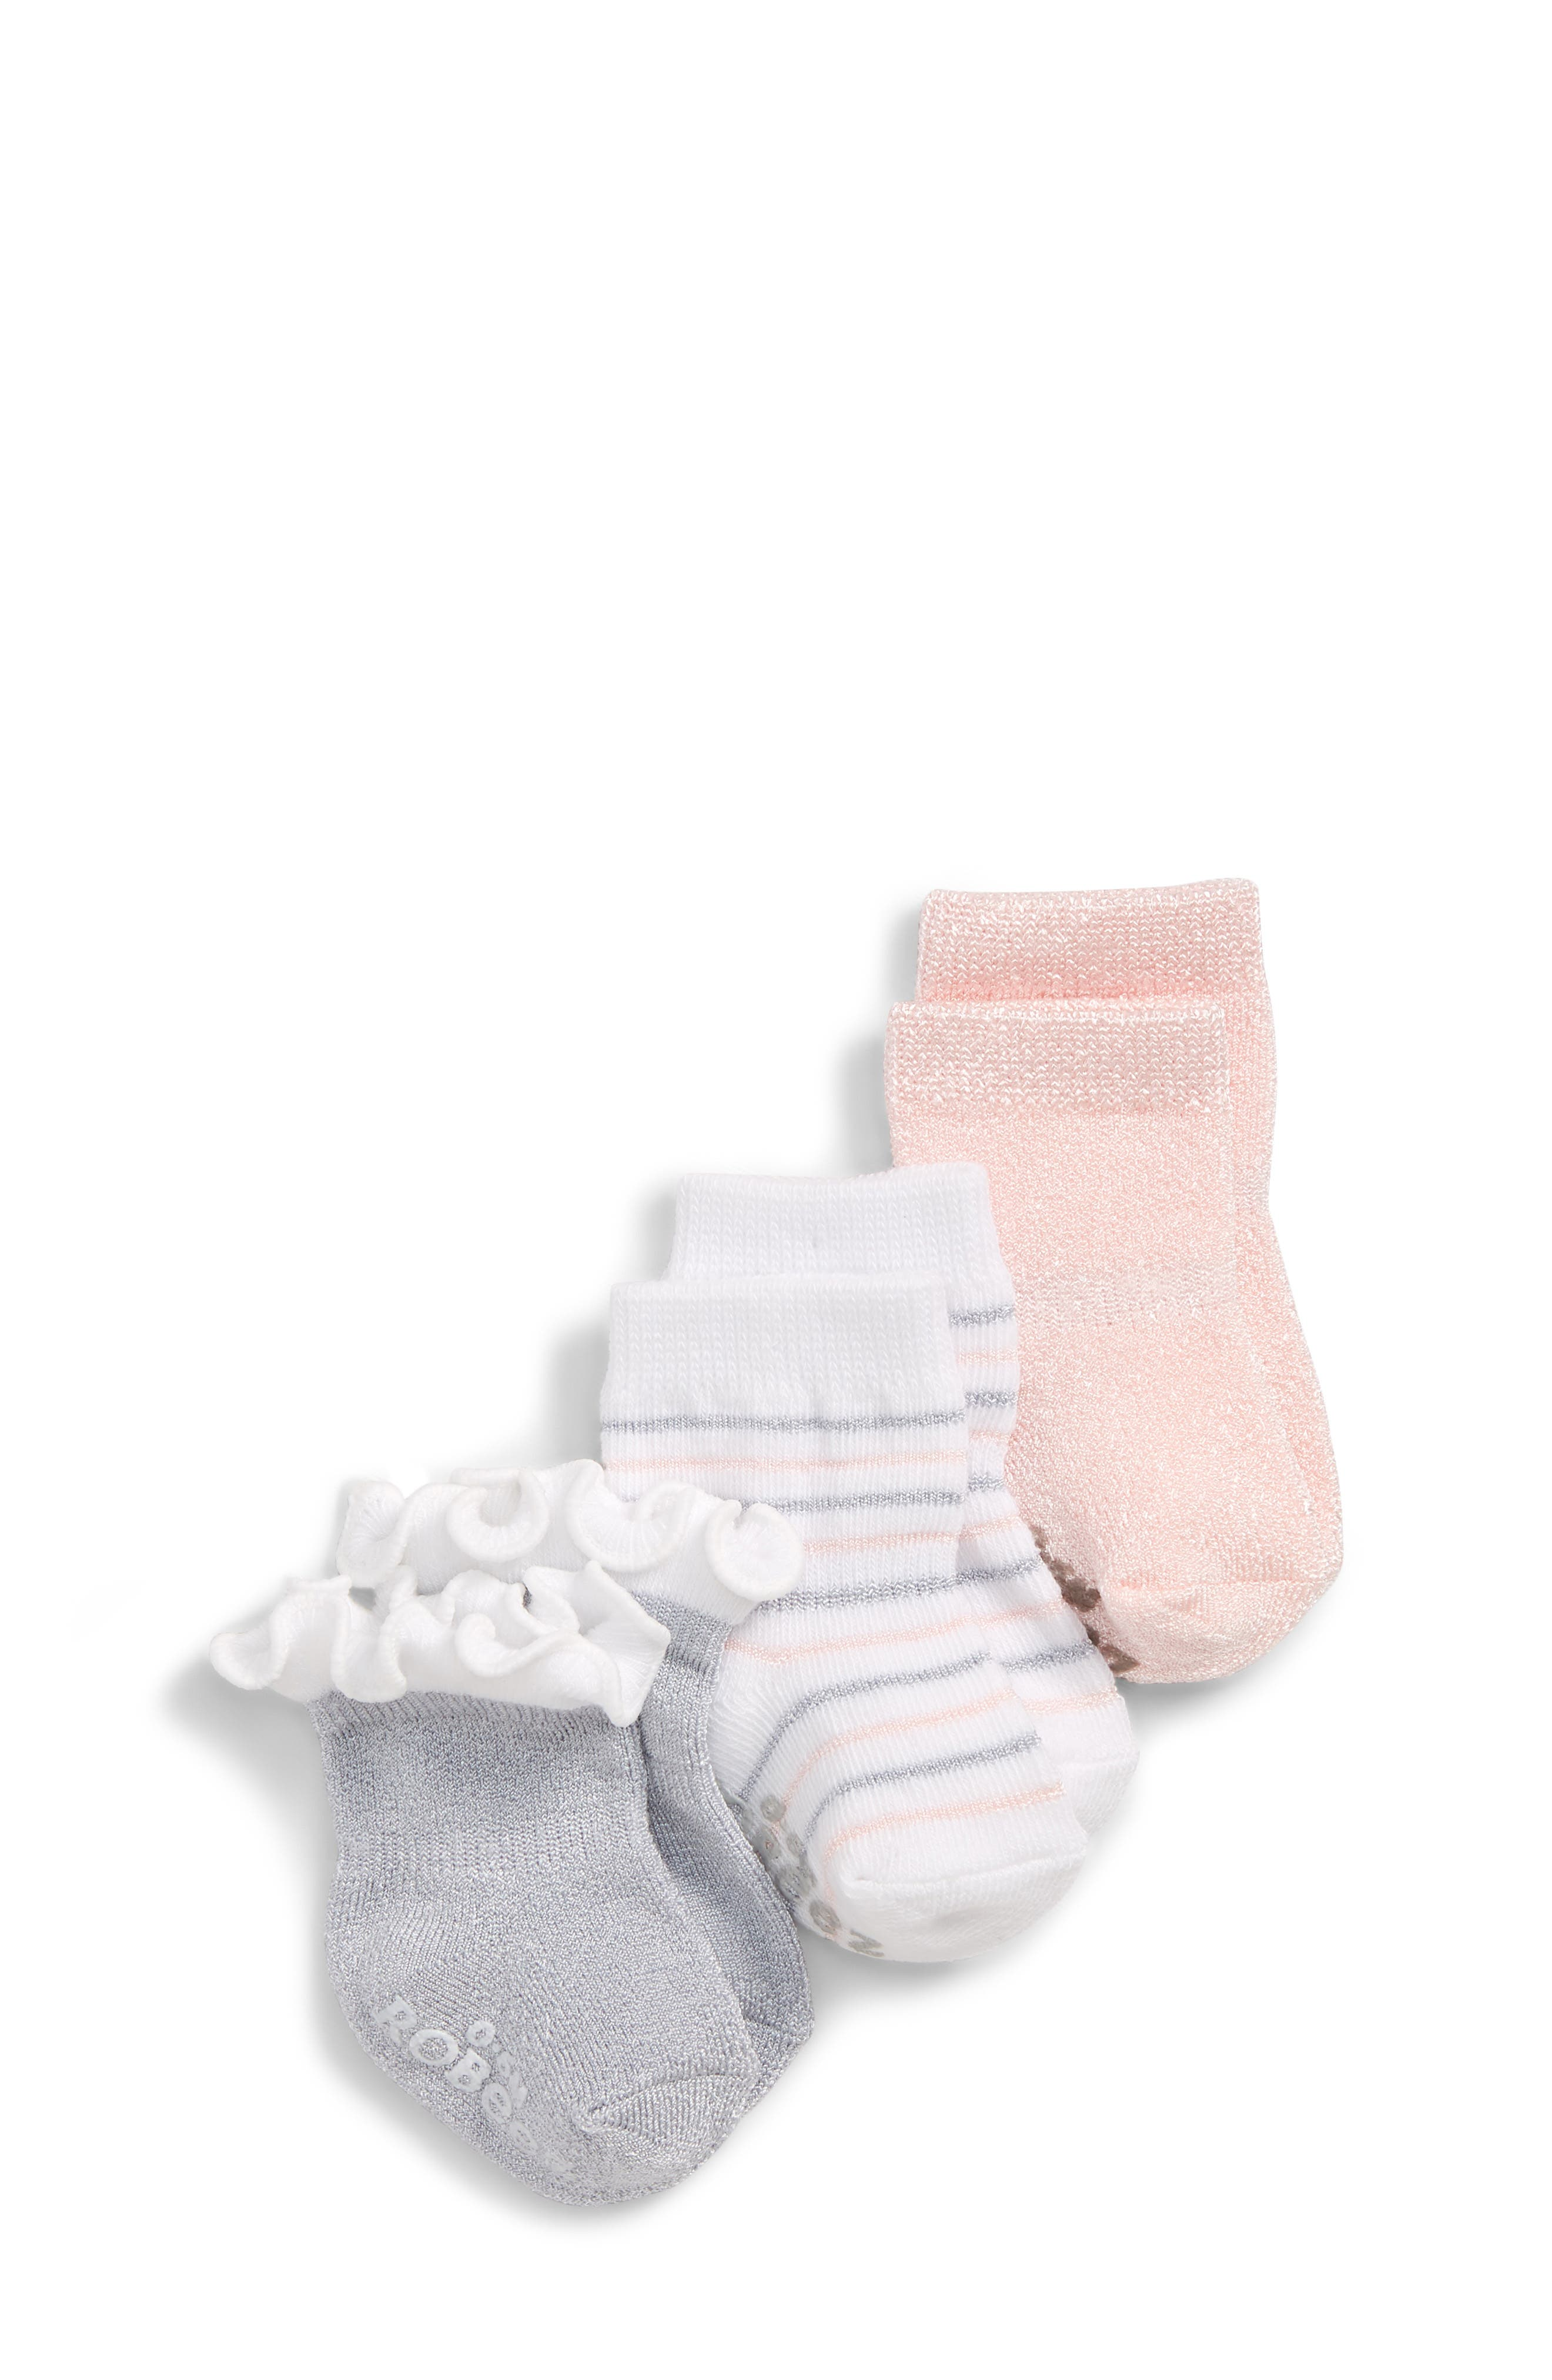 3-Pack Ankle Socks,                             Main thumbnail 1, color,                             SILVER/ WHITE/ PINK